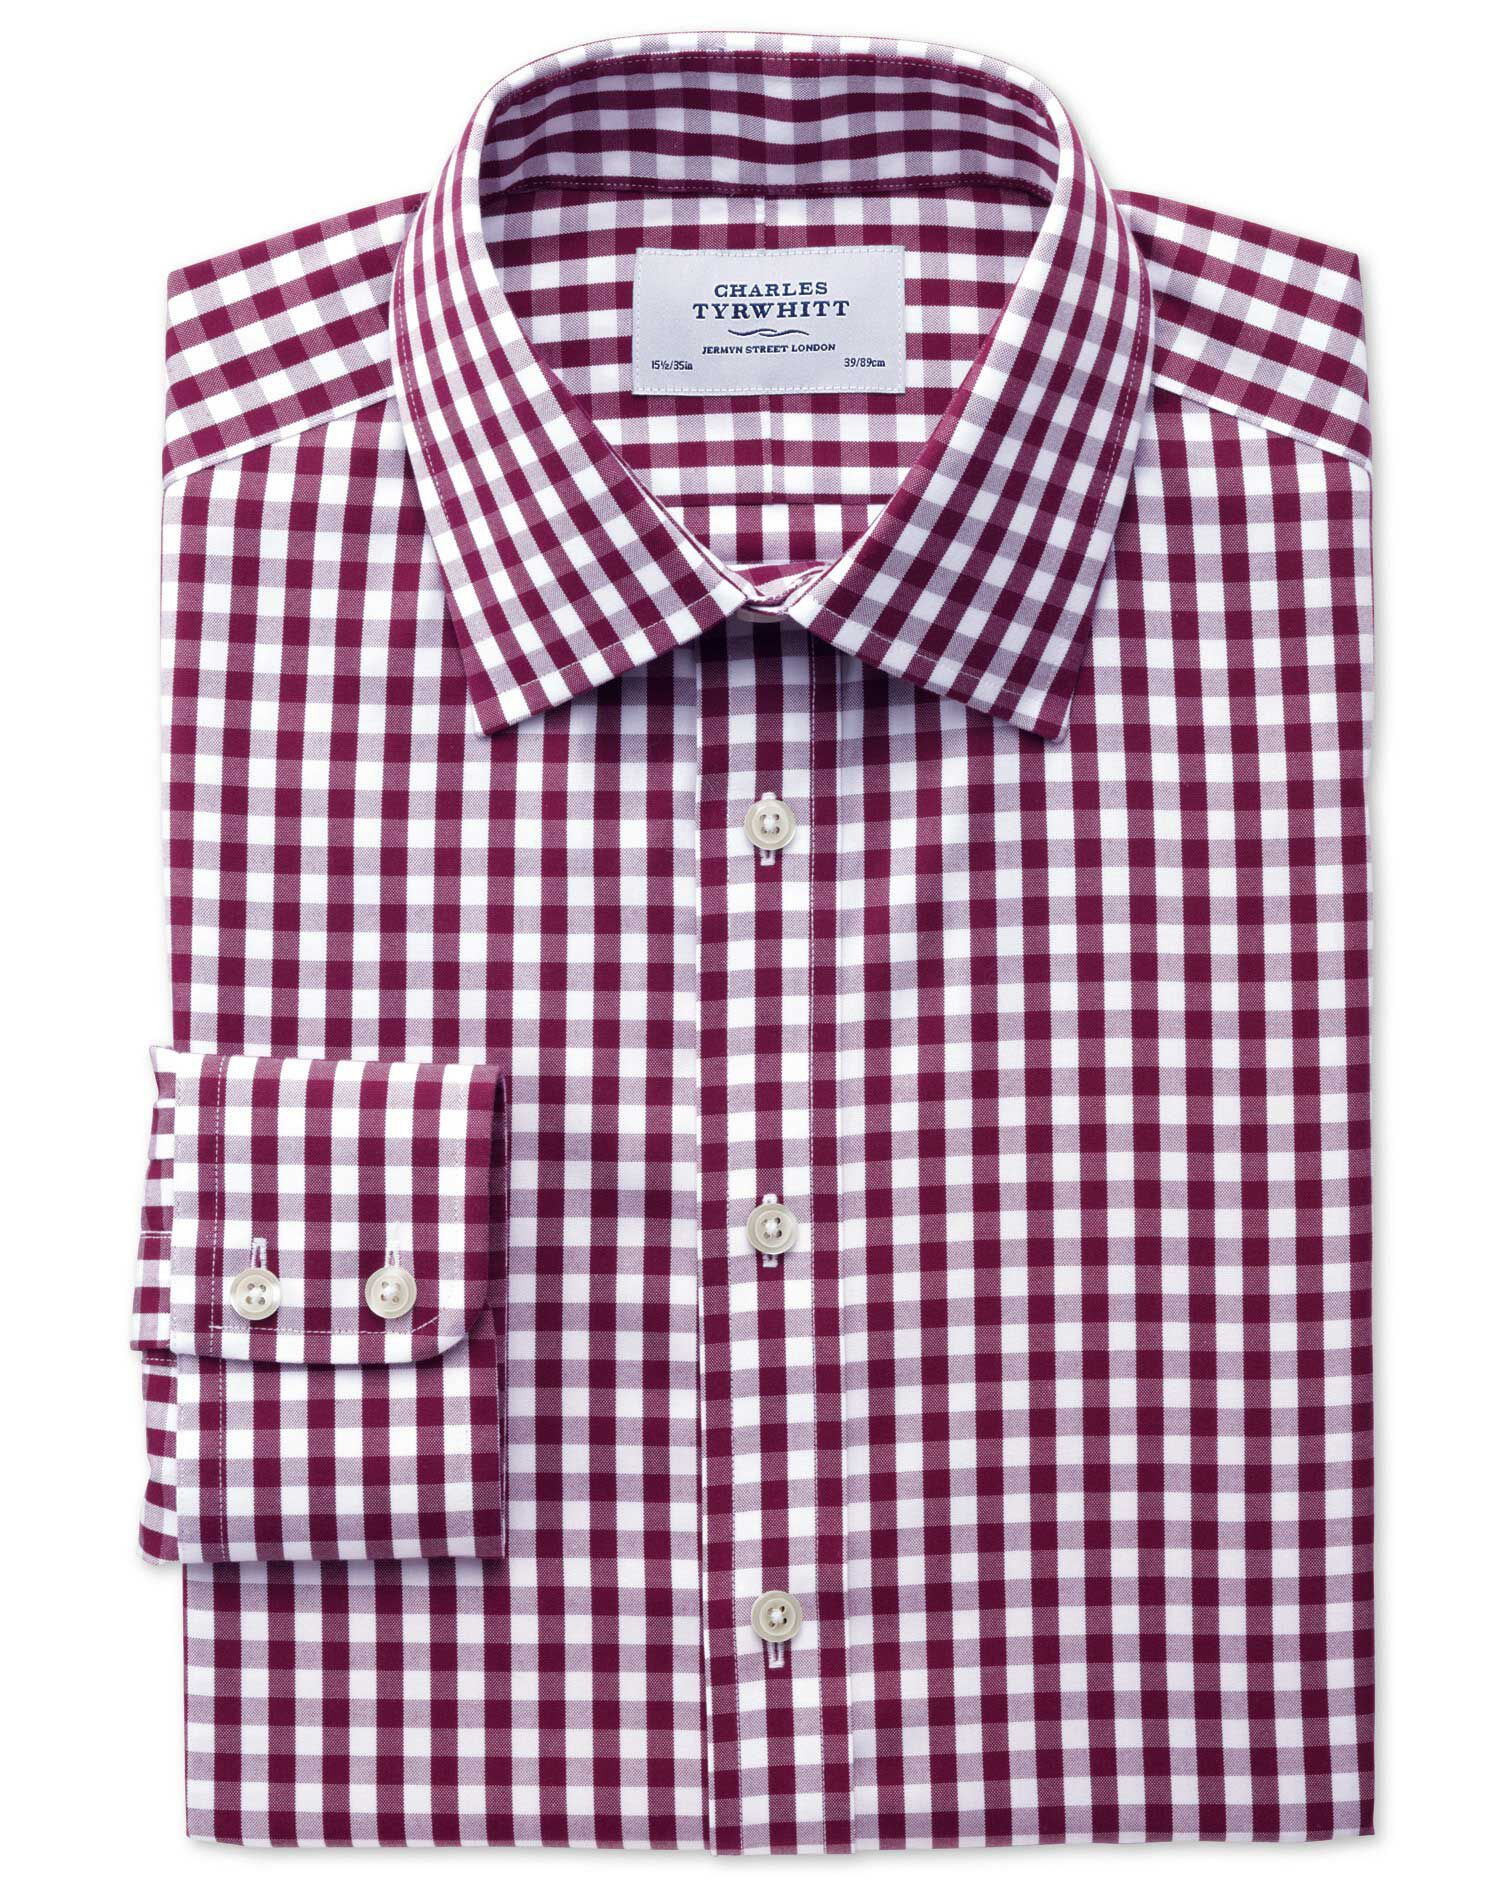 Slim Fit Non-Iron Oxford Gingham Berry Cotton Formal Shirt Single Cuff Size 15.5/33 by Charles Tyrwh